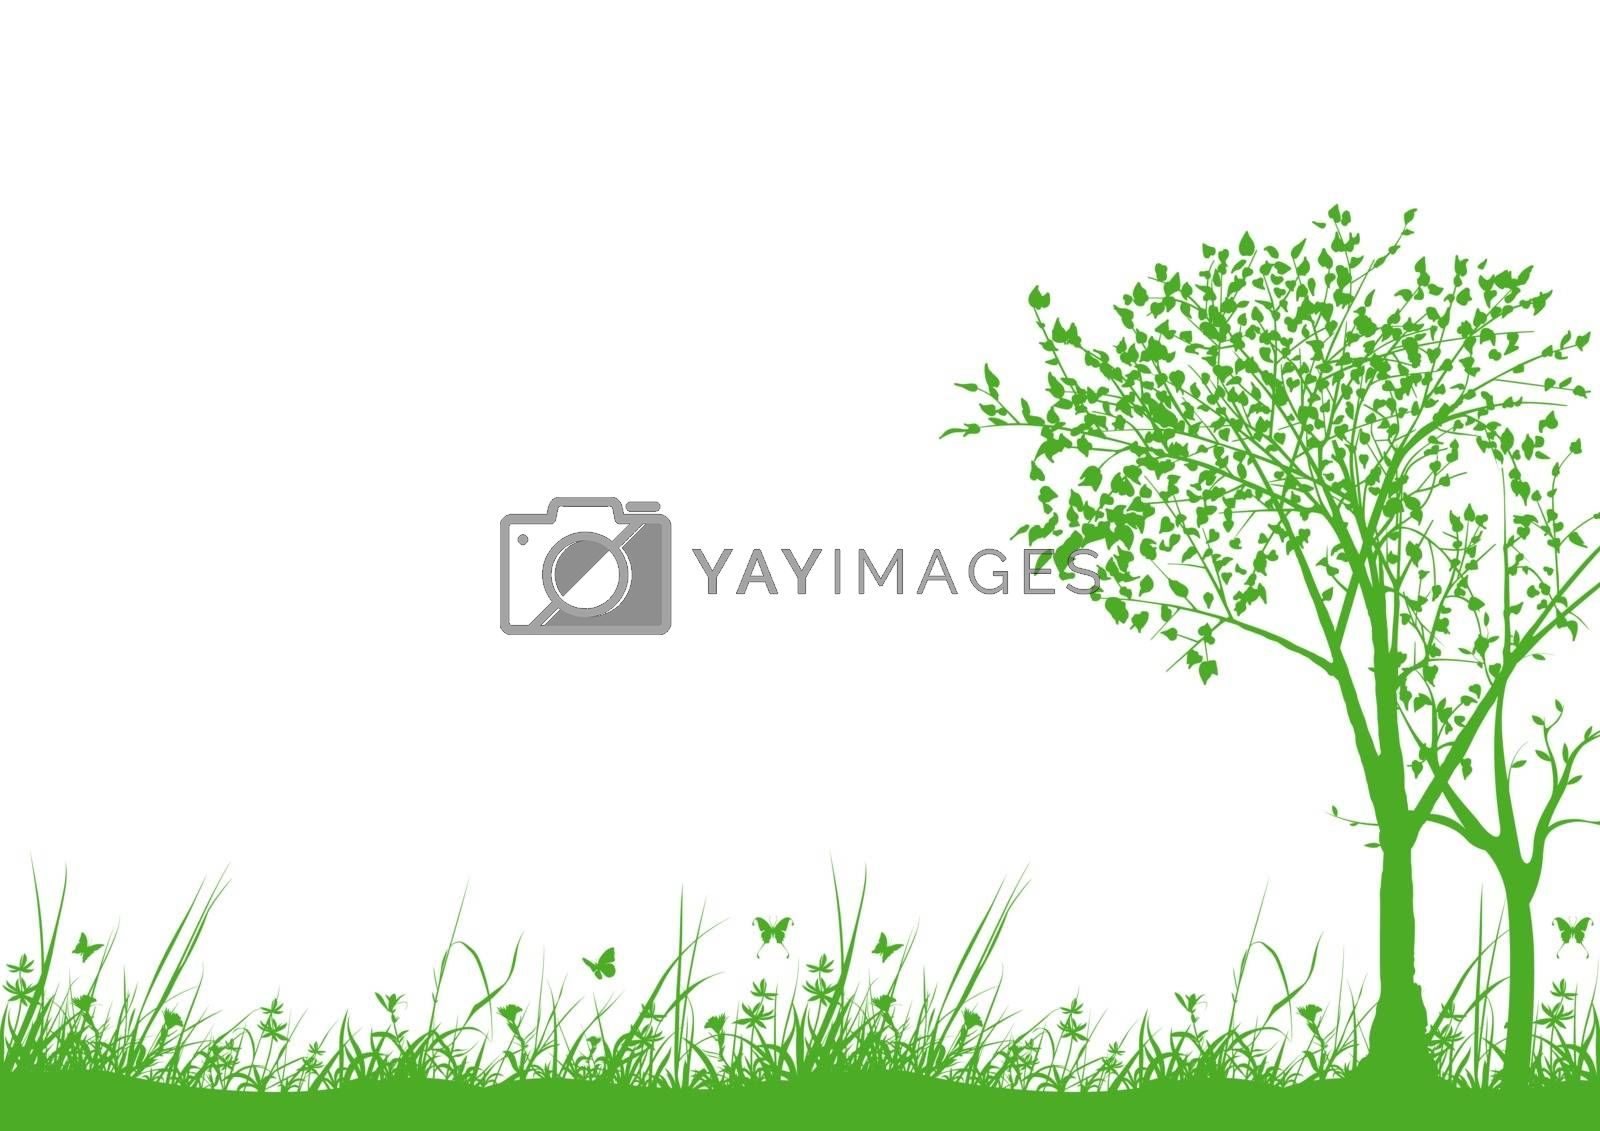 Nature Silhouettes with Grass and Trees - Background Illustration, Vector